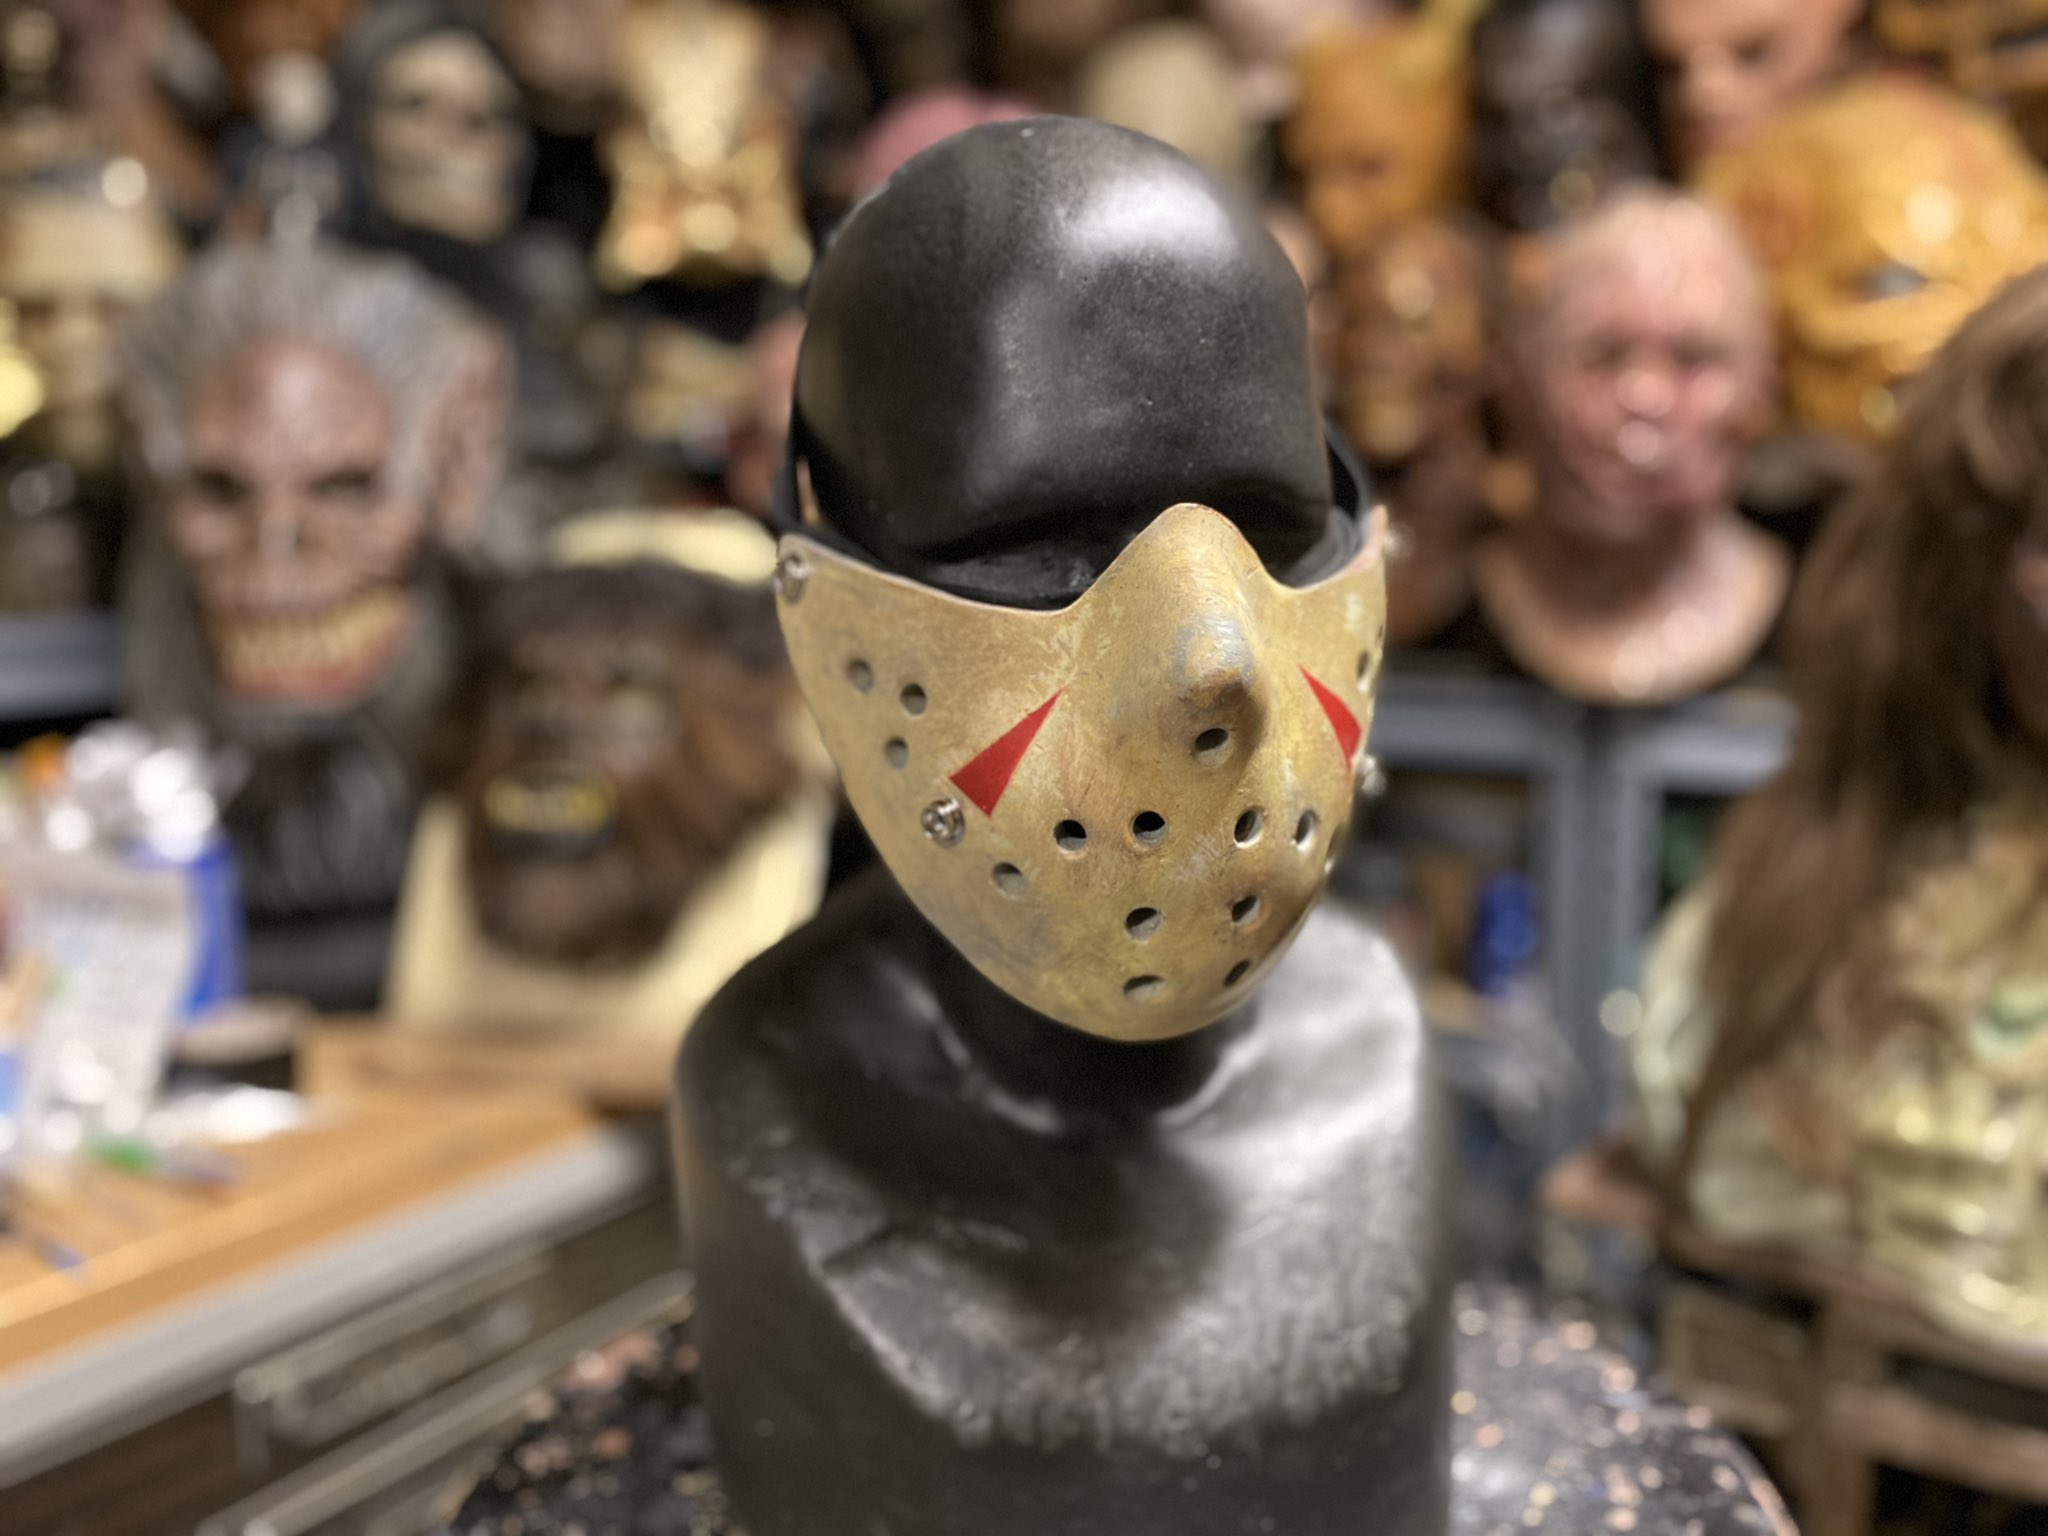 Jason Voorhees Pandemic Mask Available Boing Boing